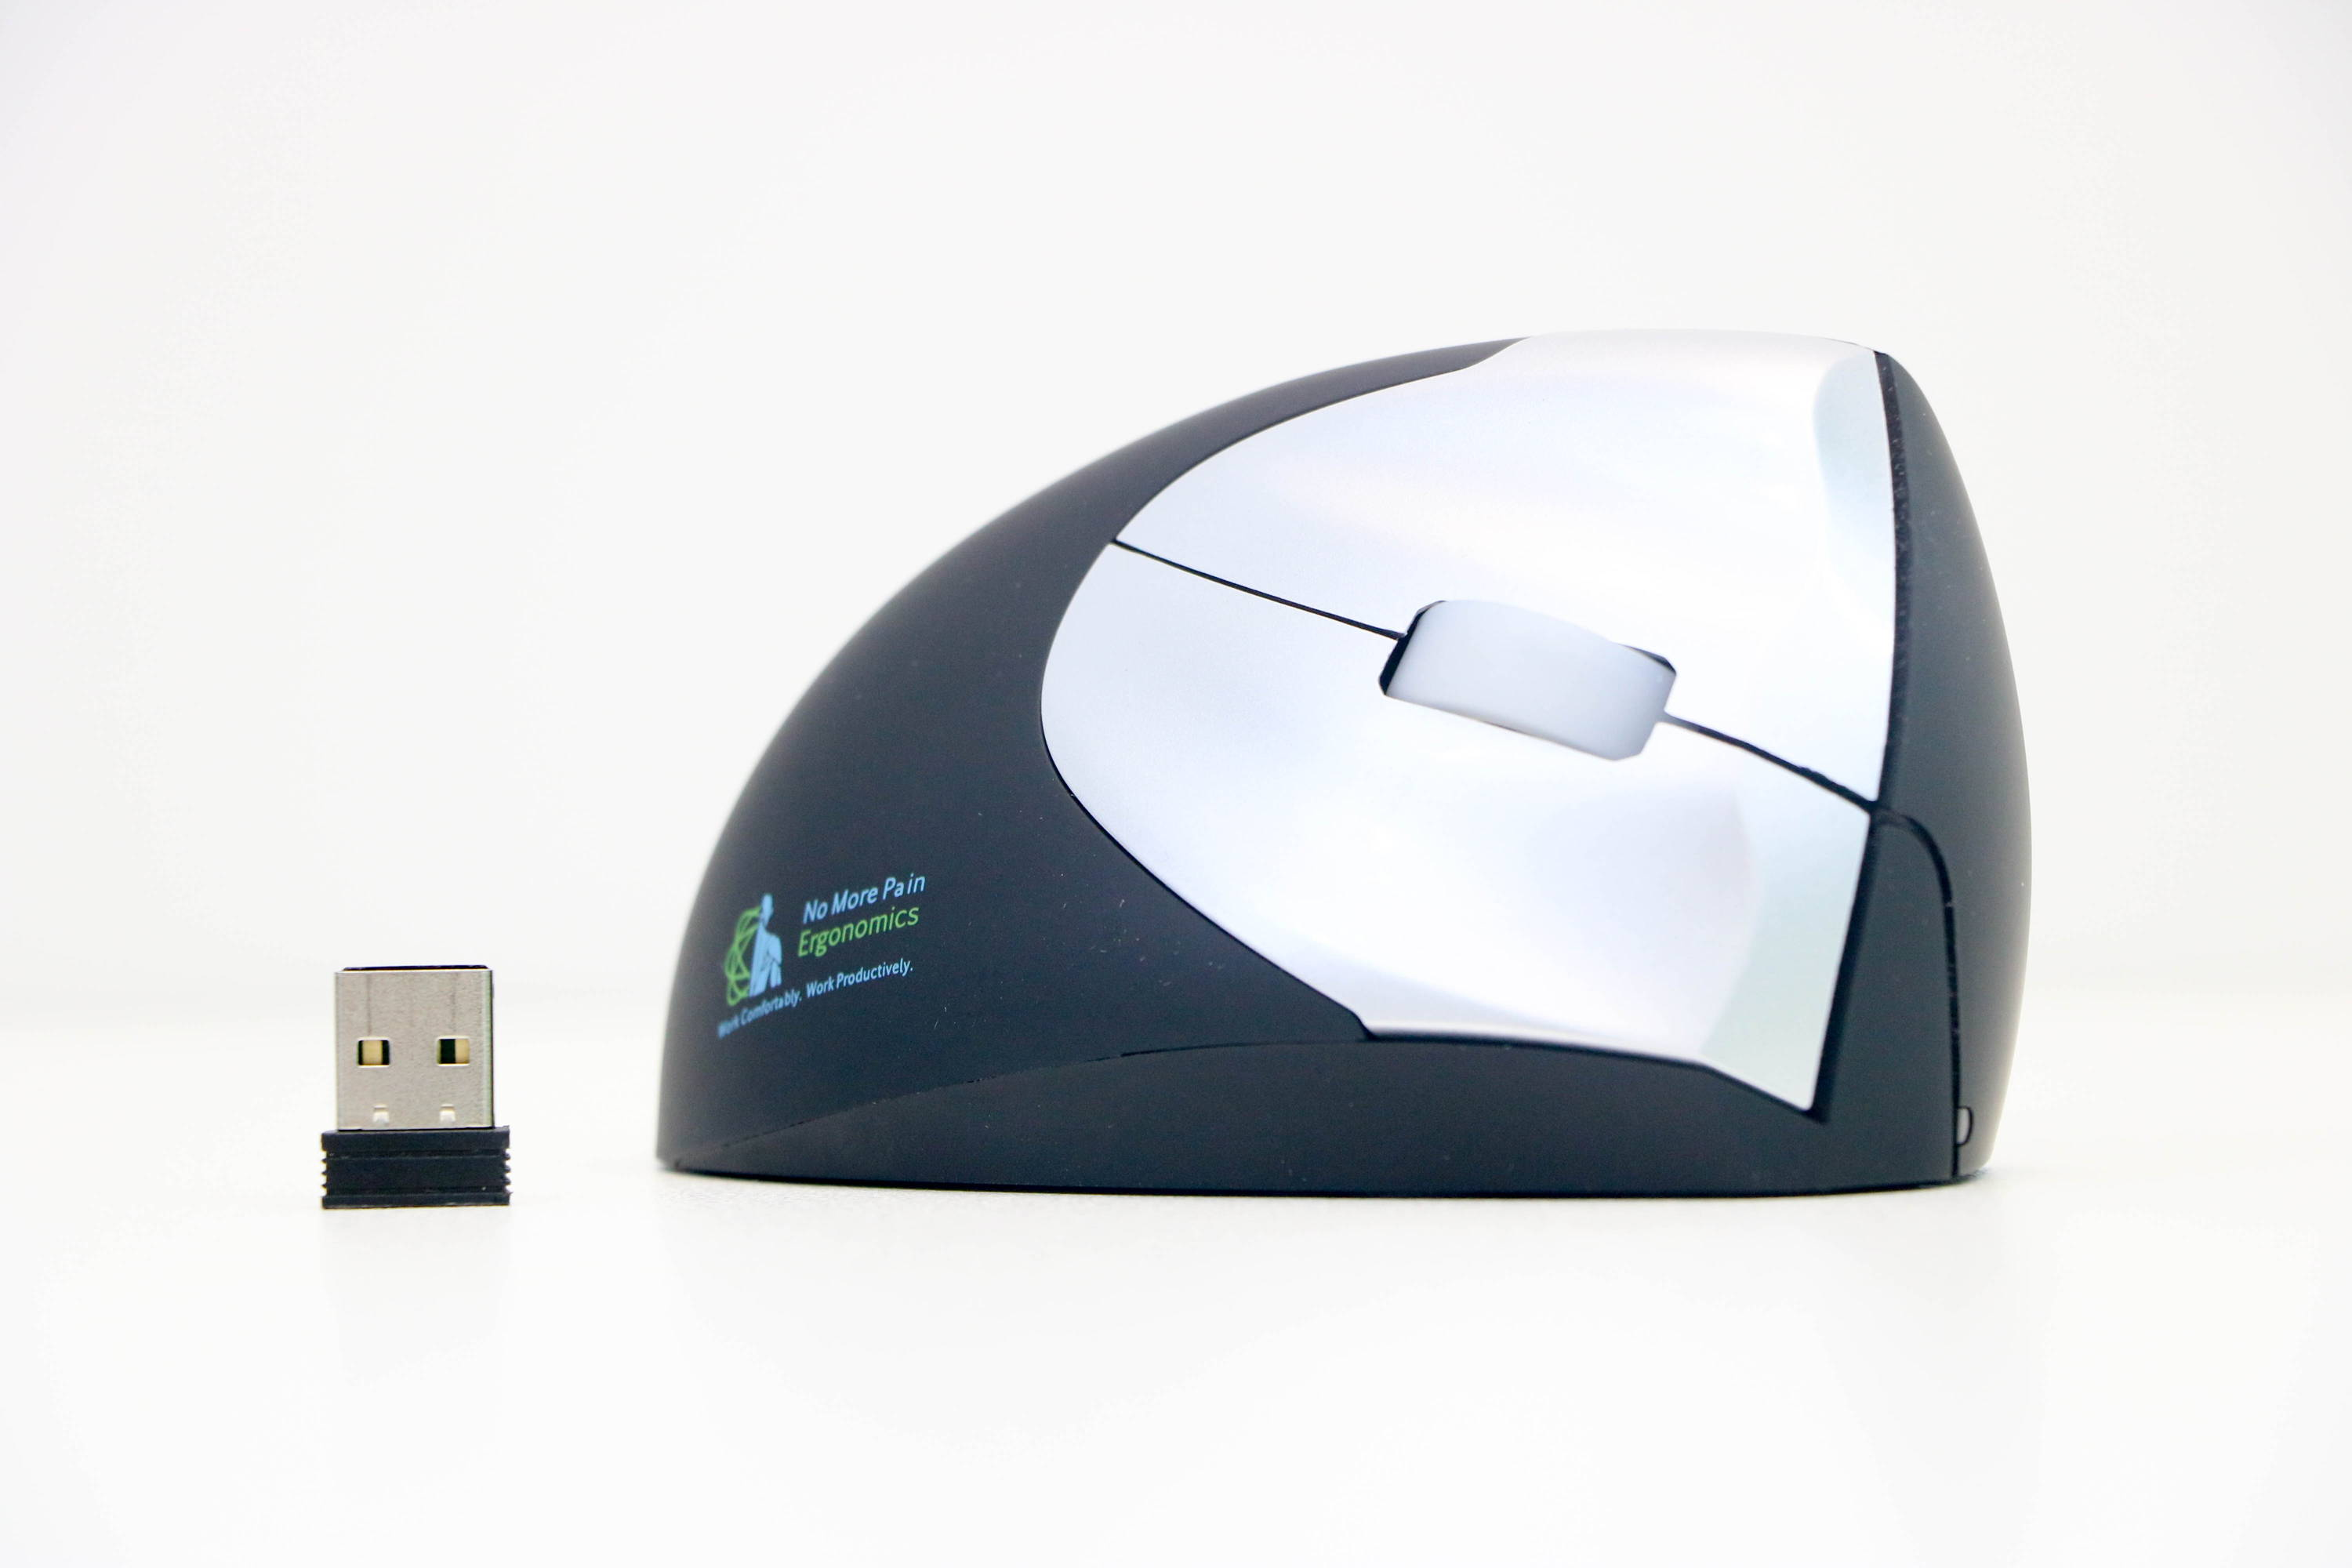 ergonomic mouse for tennis elbow pain